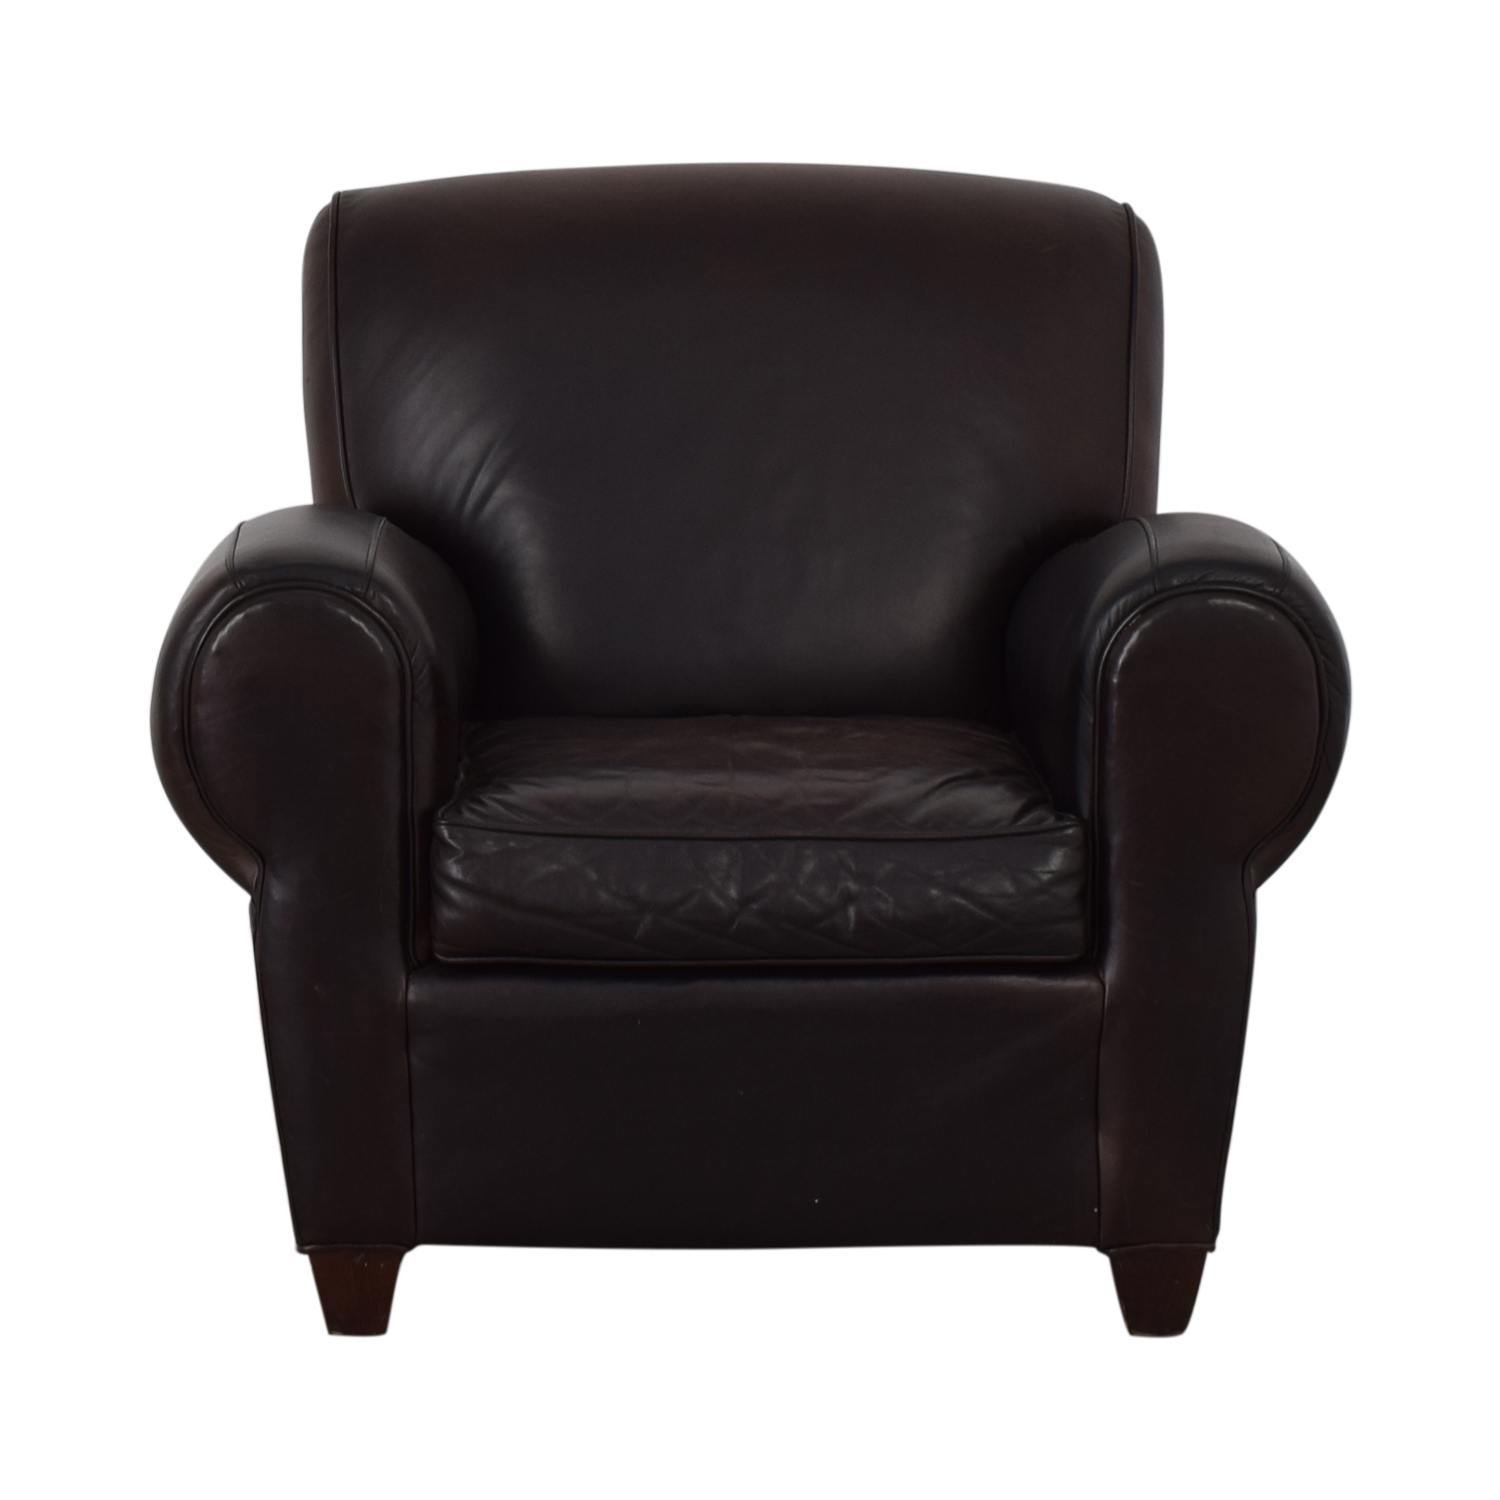 70% OFF   Pottery Barn Pottery Barn By Mitchell Gold + Bob Williams Brown  Club Chair / Chairs